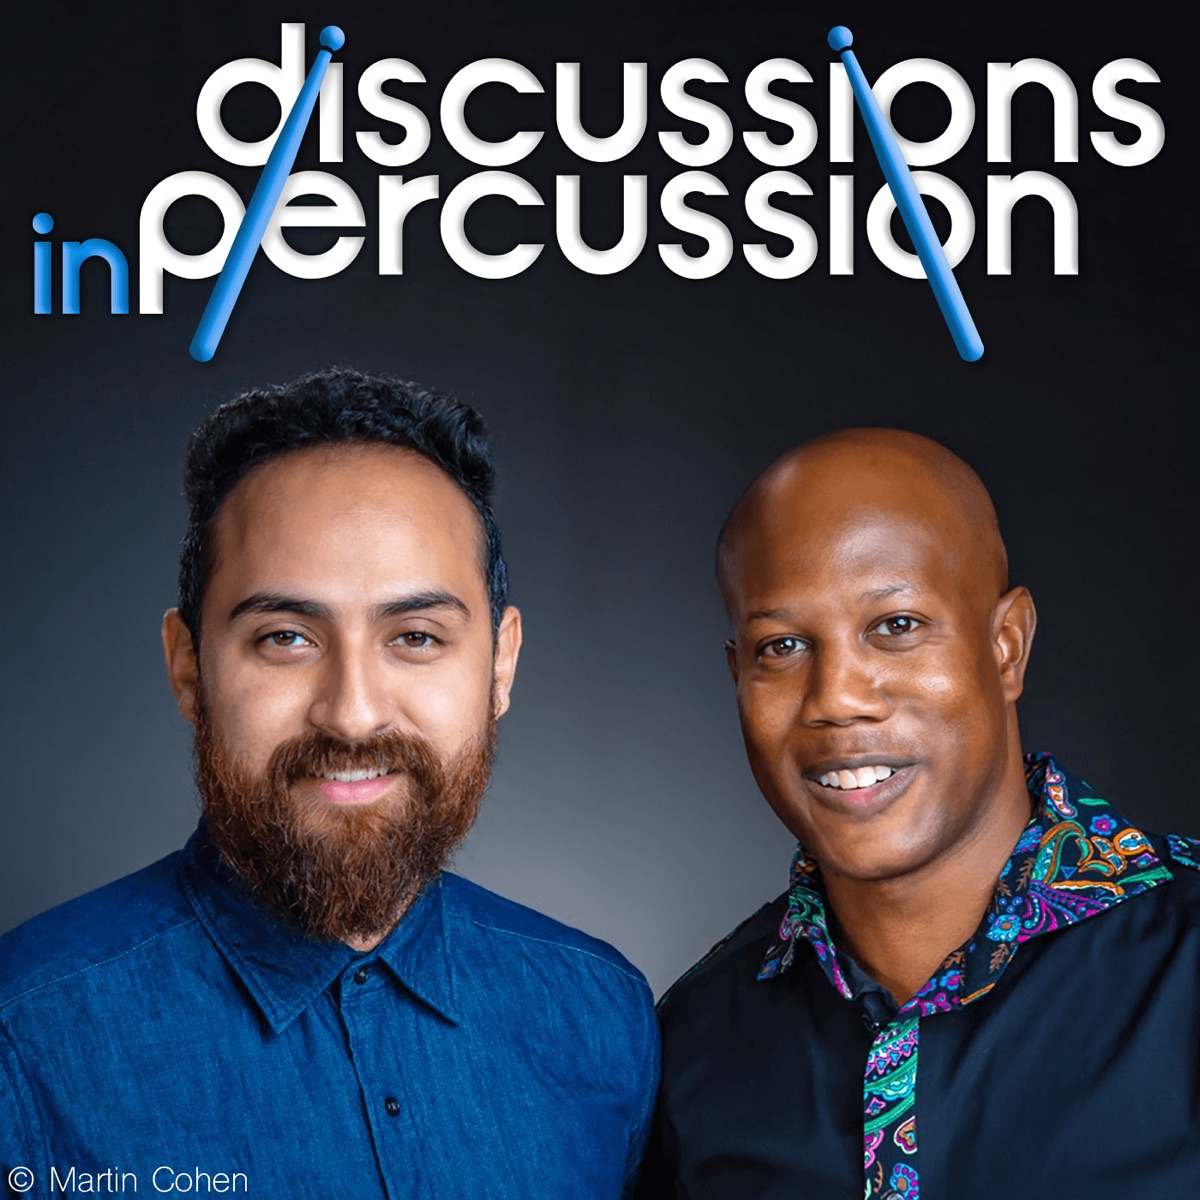 Discussions in Percussion